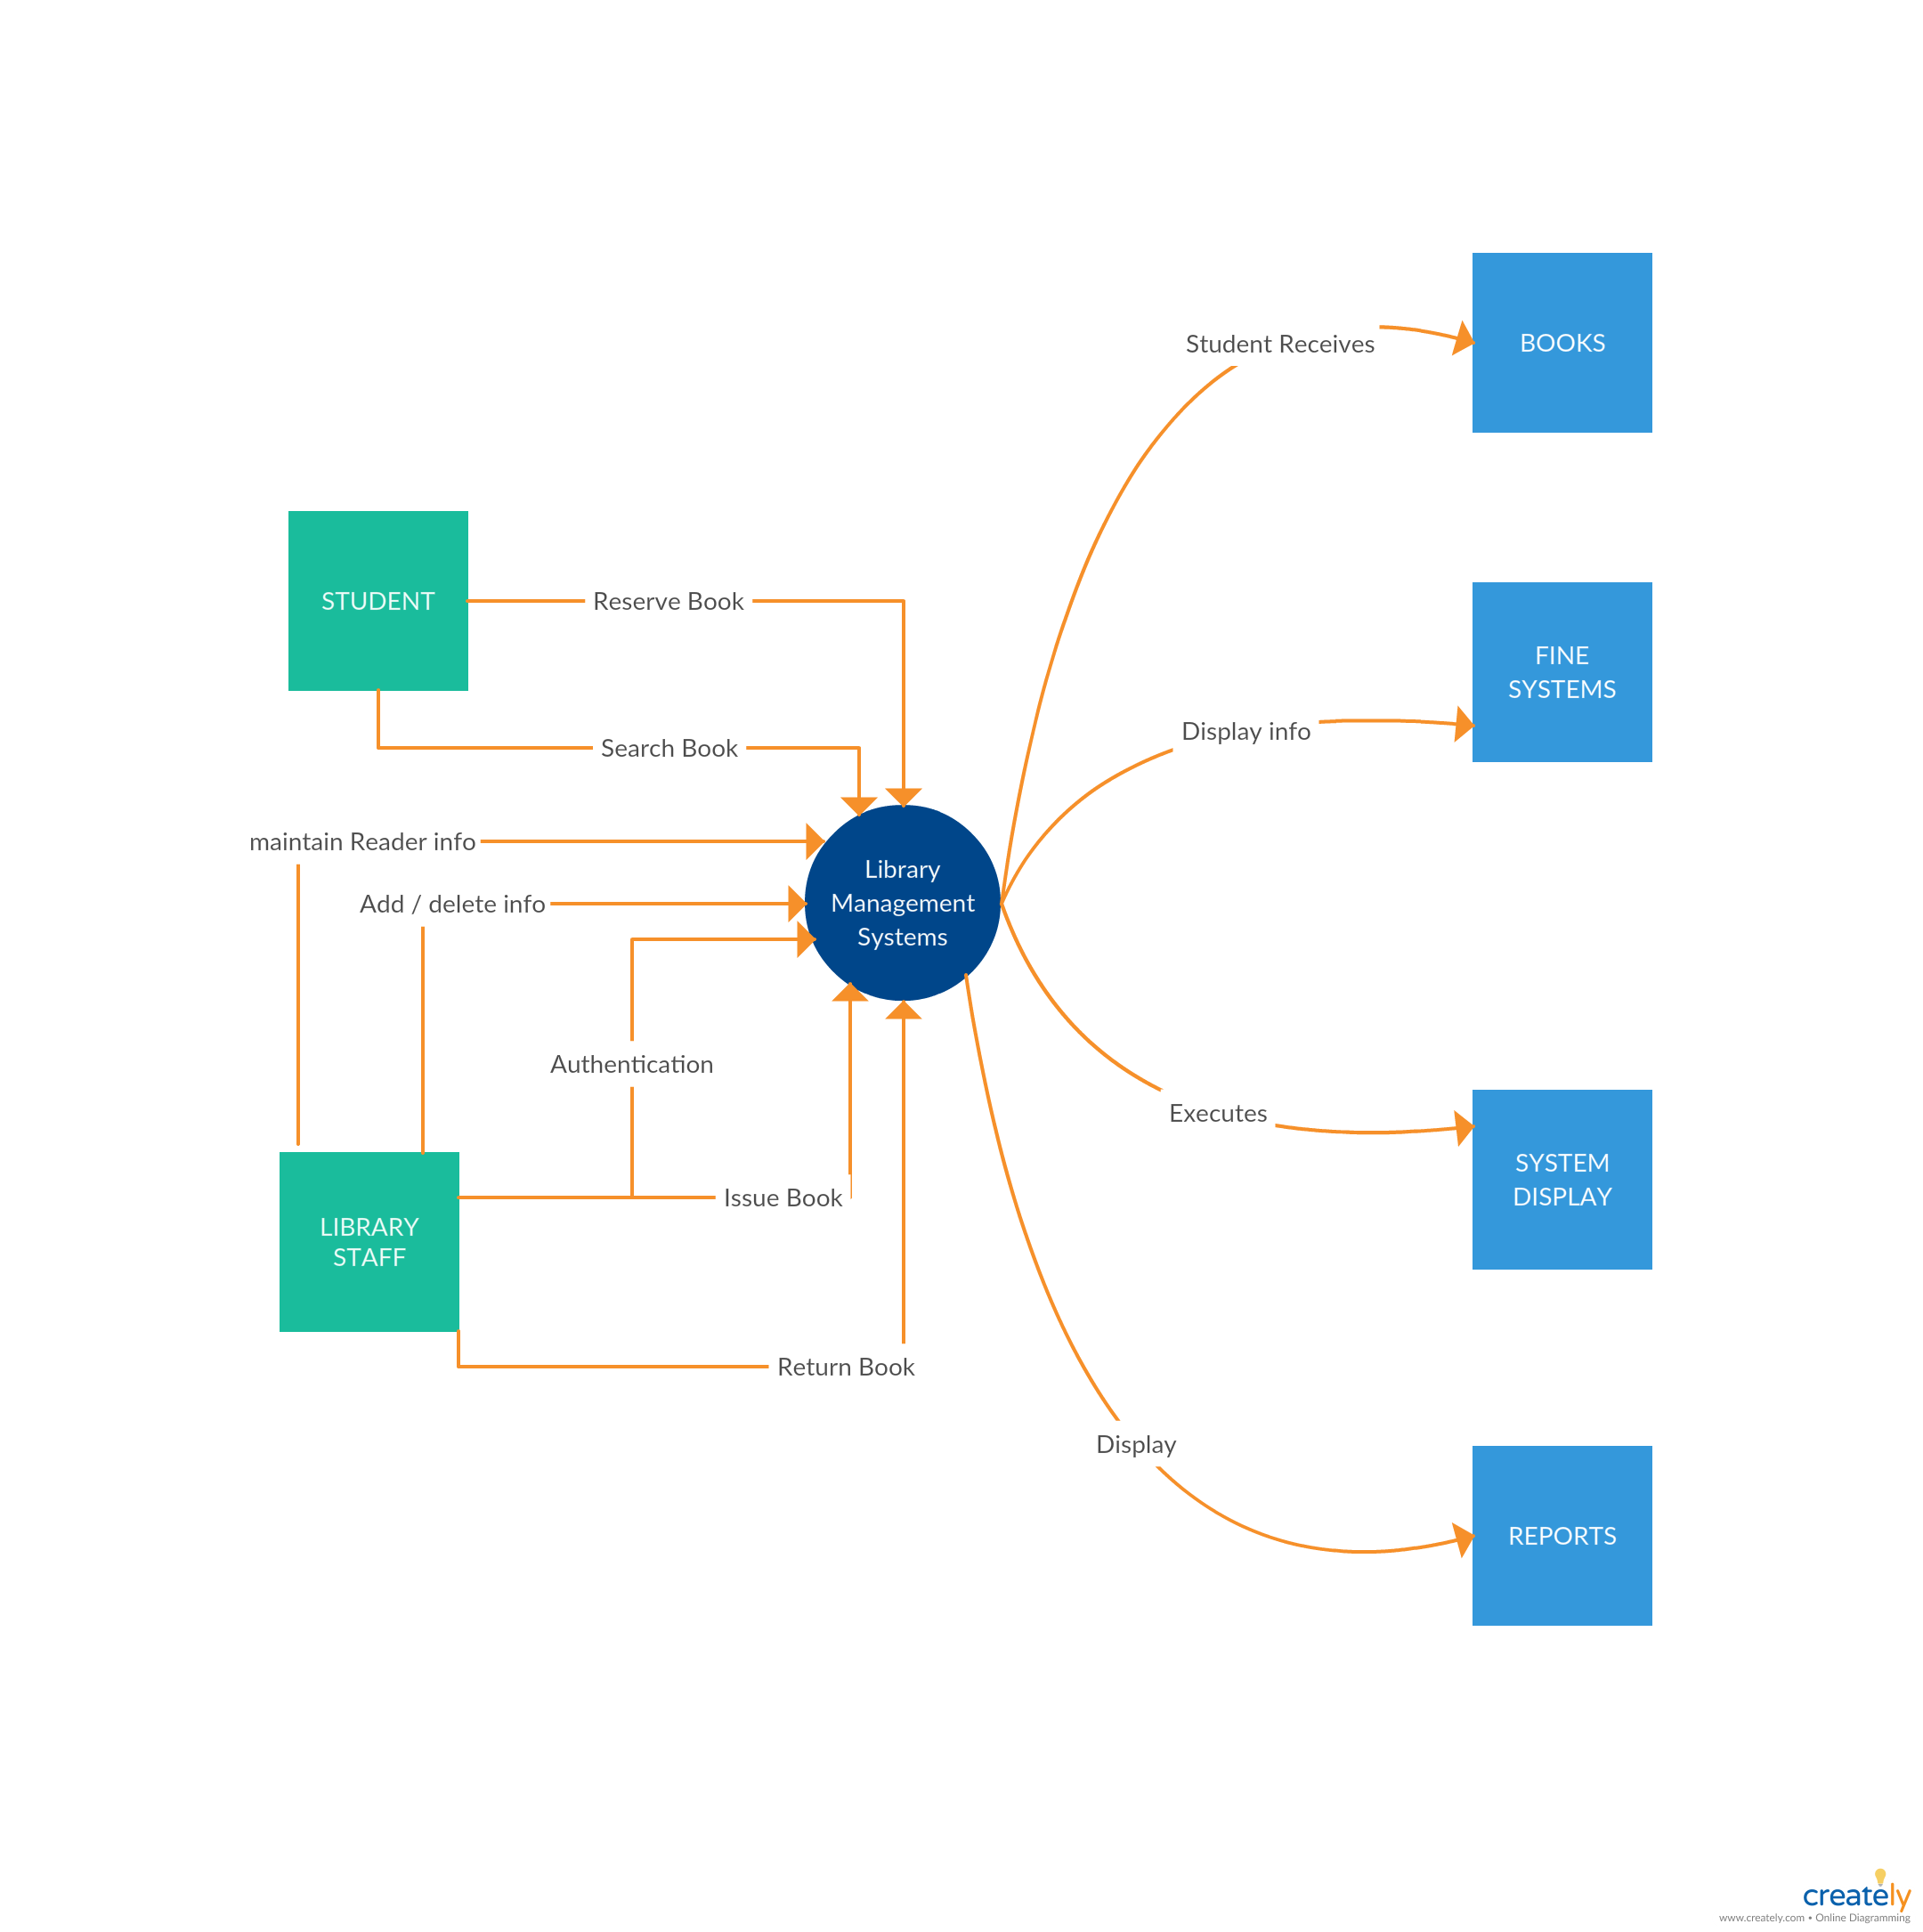 Data flow diagram template of library management system context data flow diagram template of library management system context diagram click on the image ccuart Images